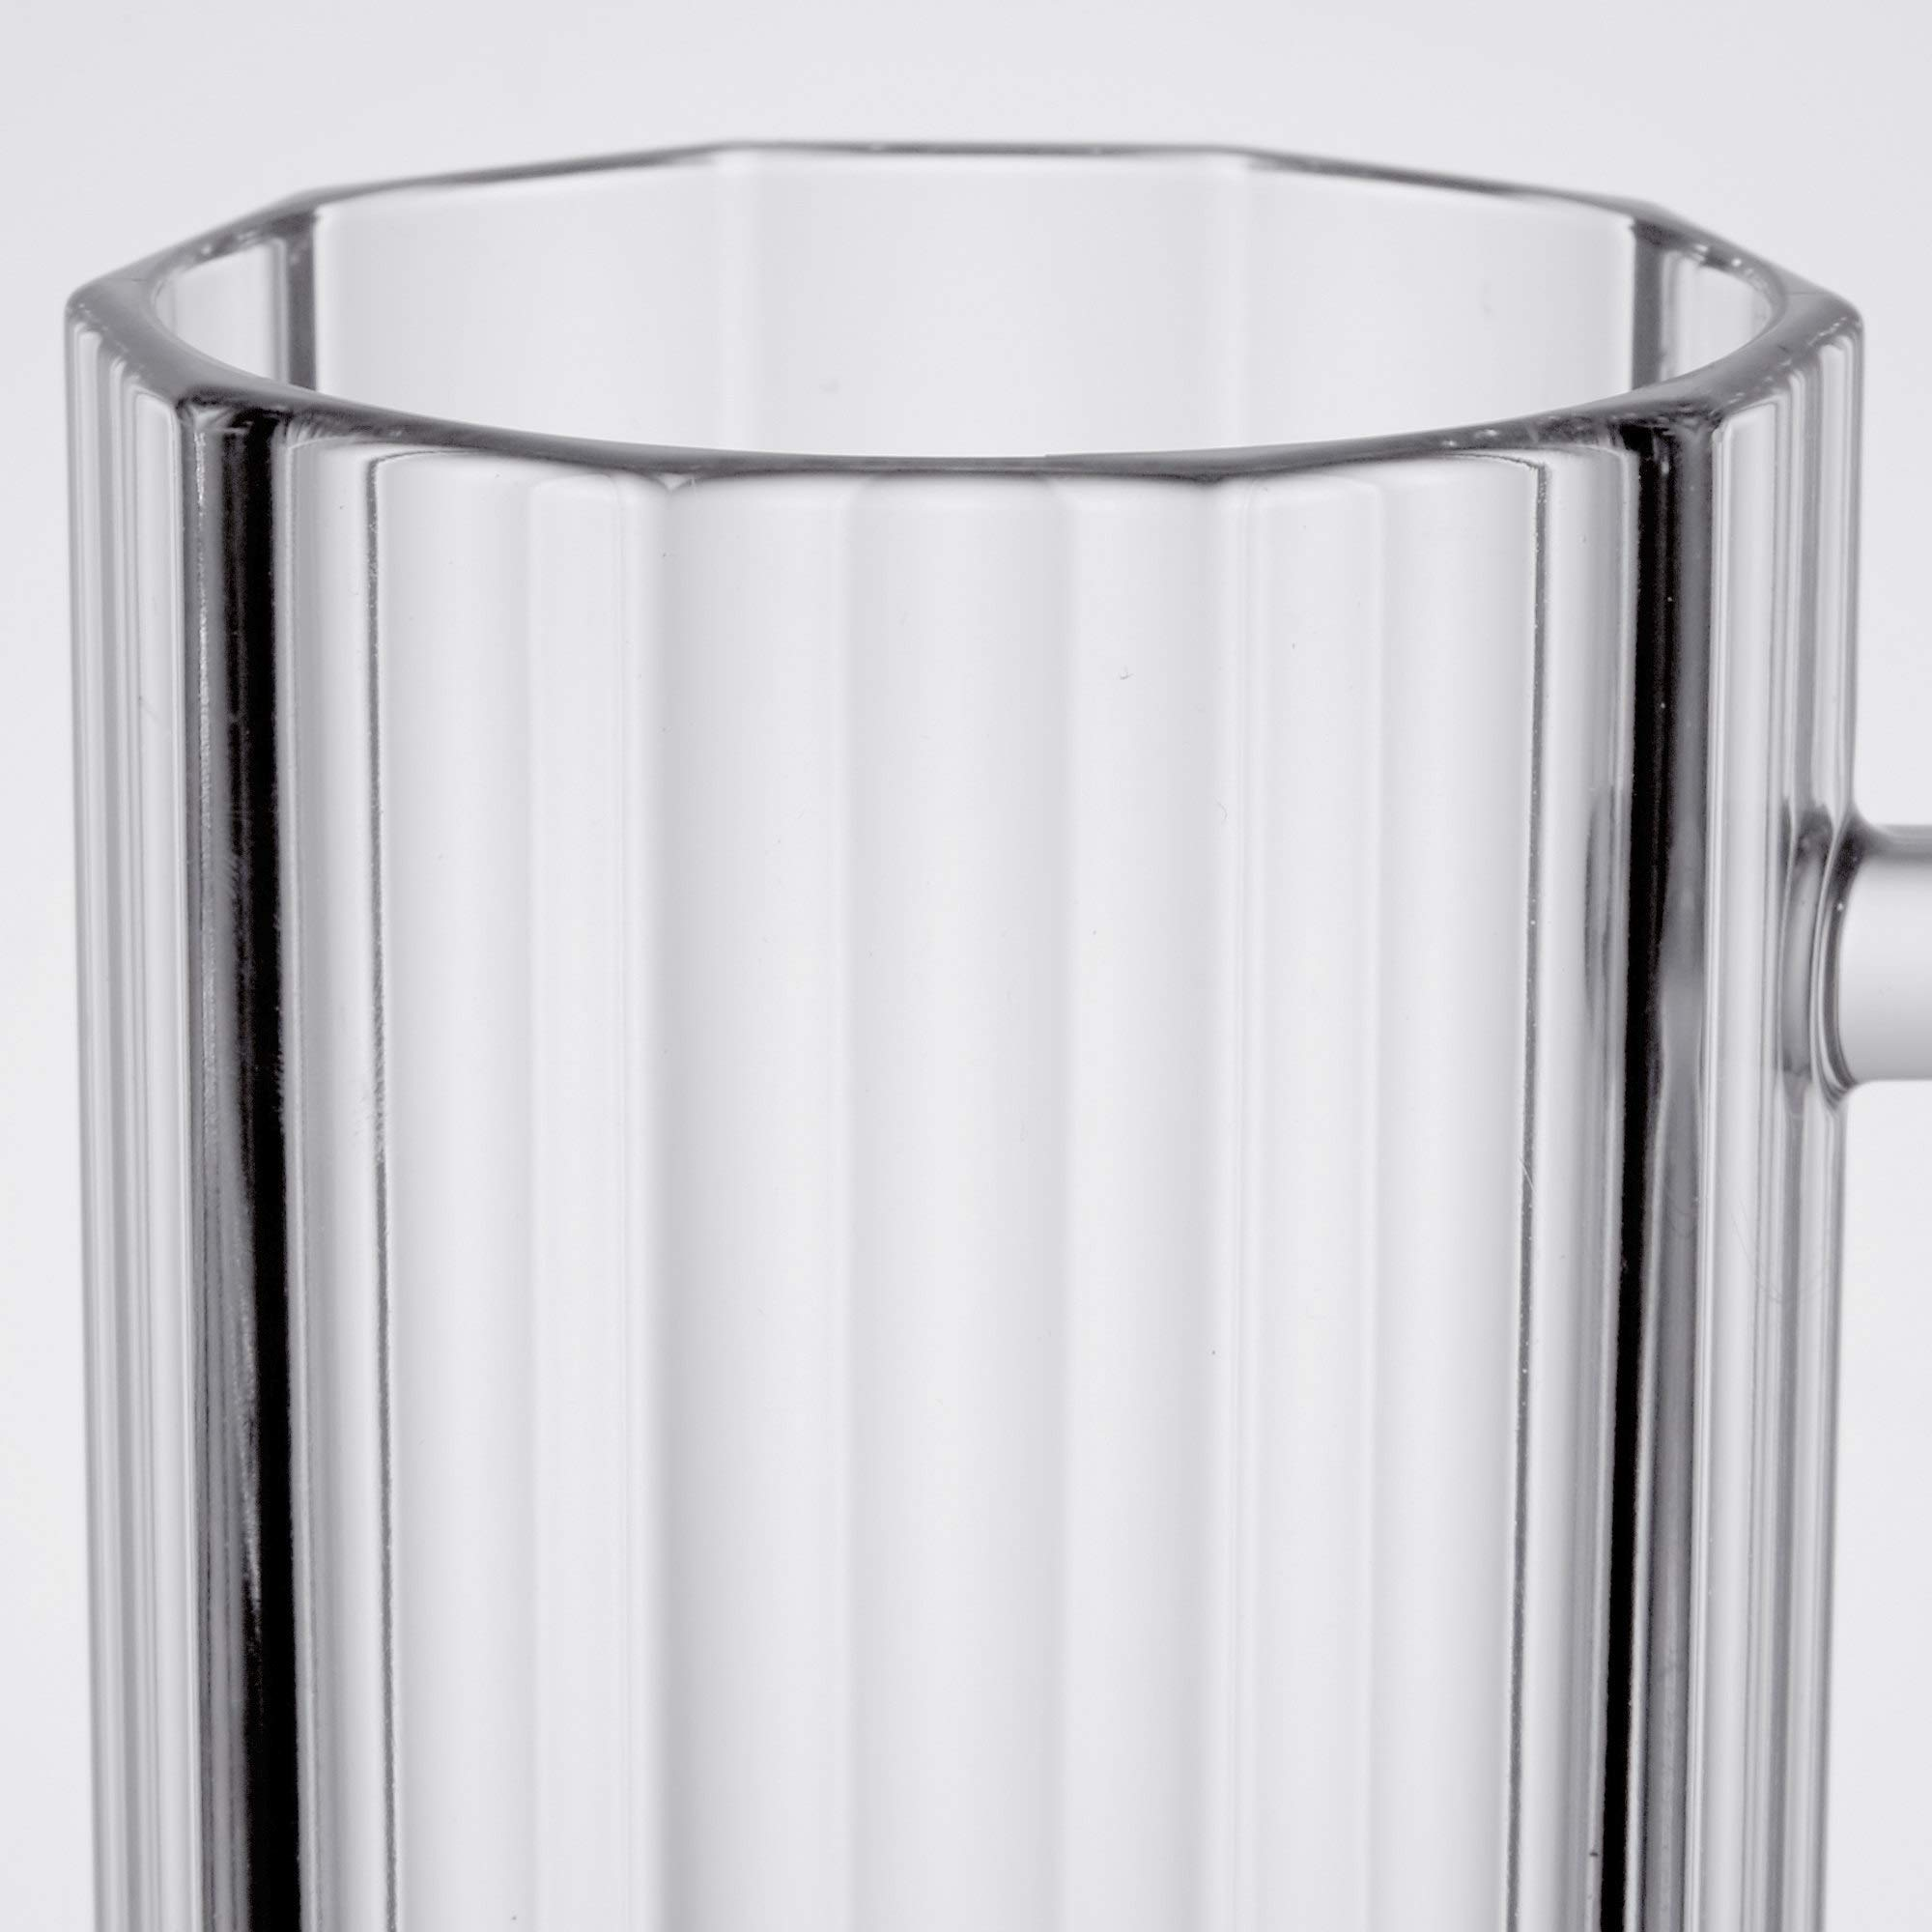 20 oz. Polycarbonate Plastic Beer Mugs with Handles, Reusable Dishwasher Safe Plastic for Indoor/Outdoor Use, by GET 00087-PC-CL-EC (Pack of 4)